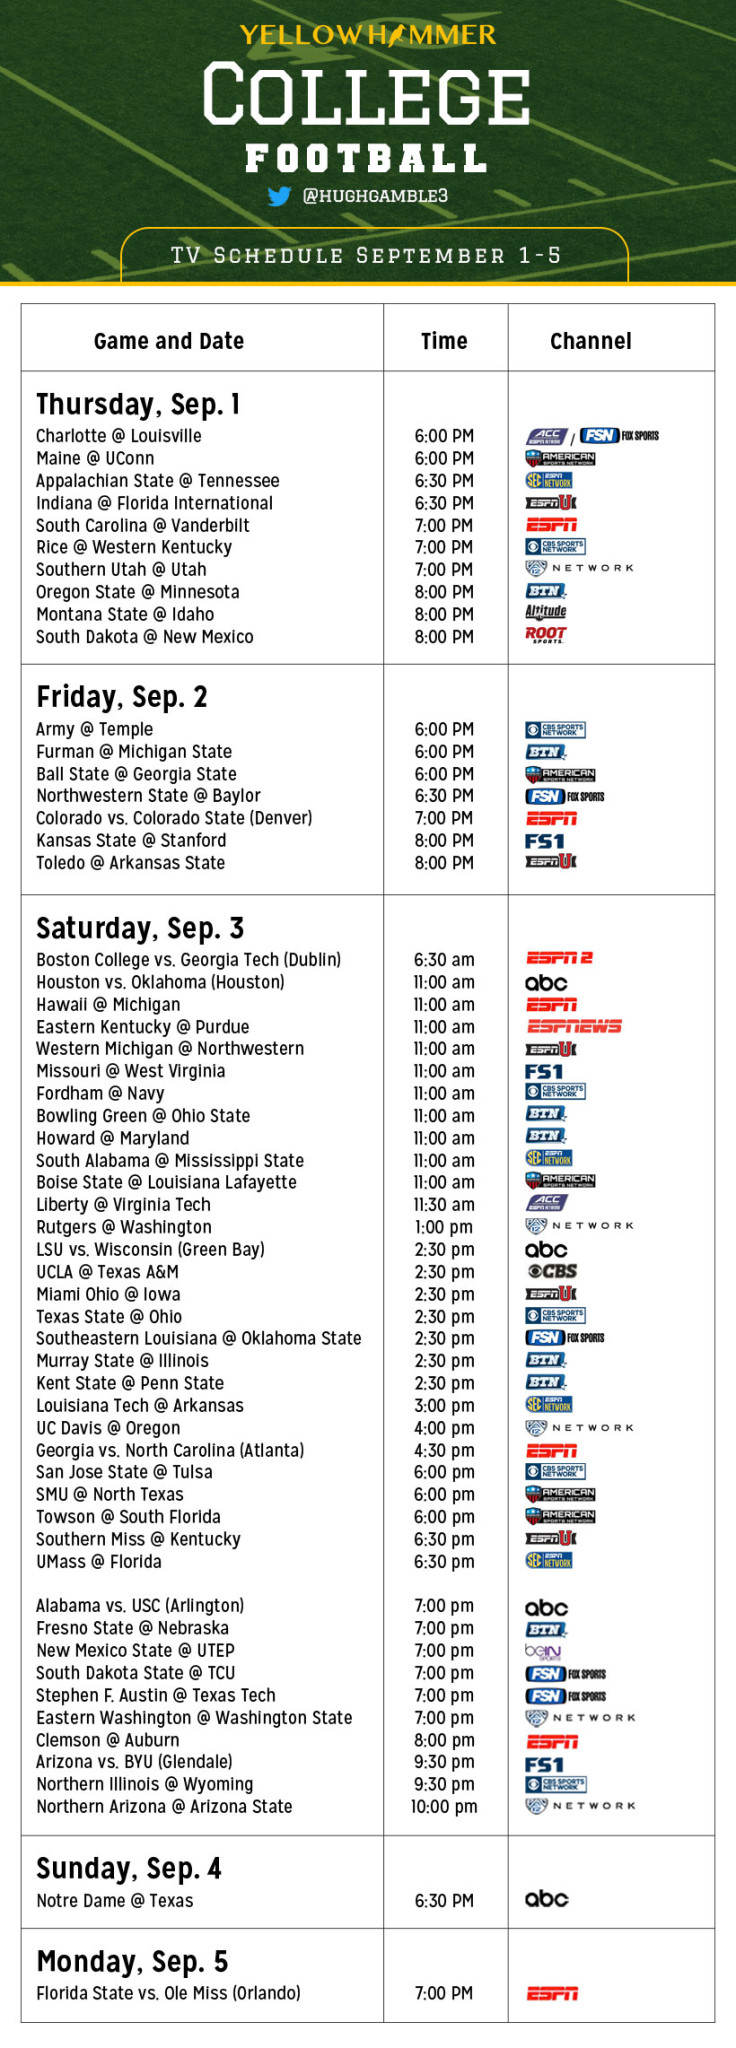 College football bowl guide: tv schedule, point spreads for every game.